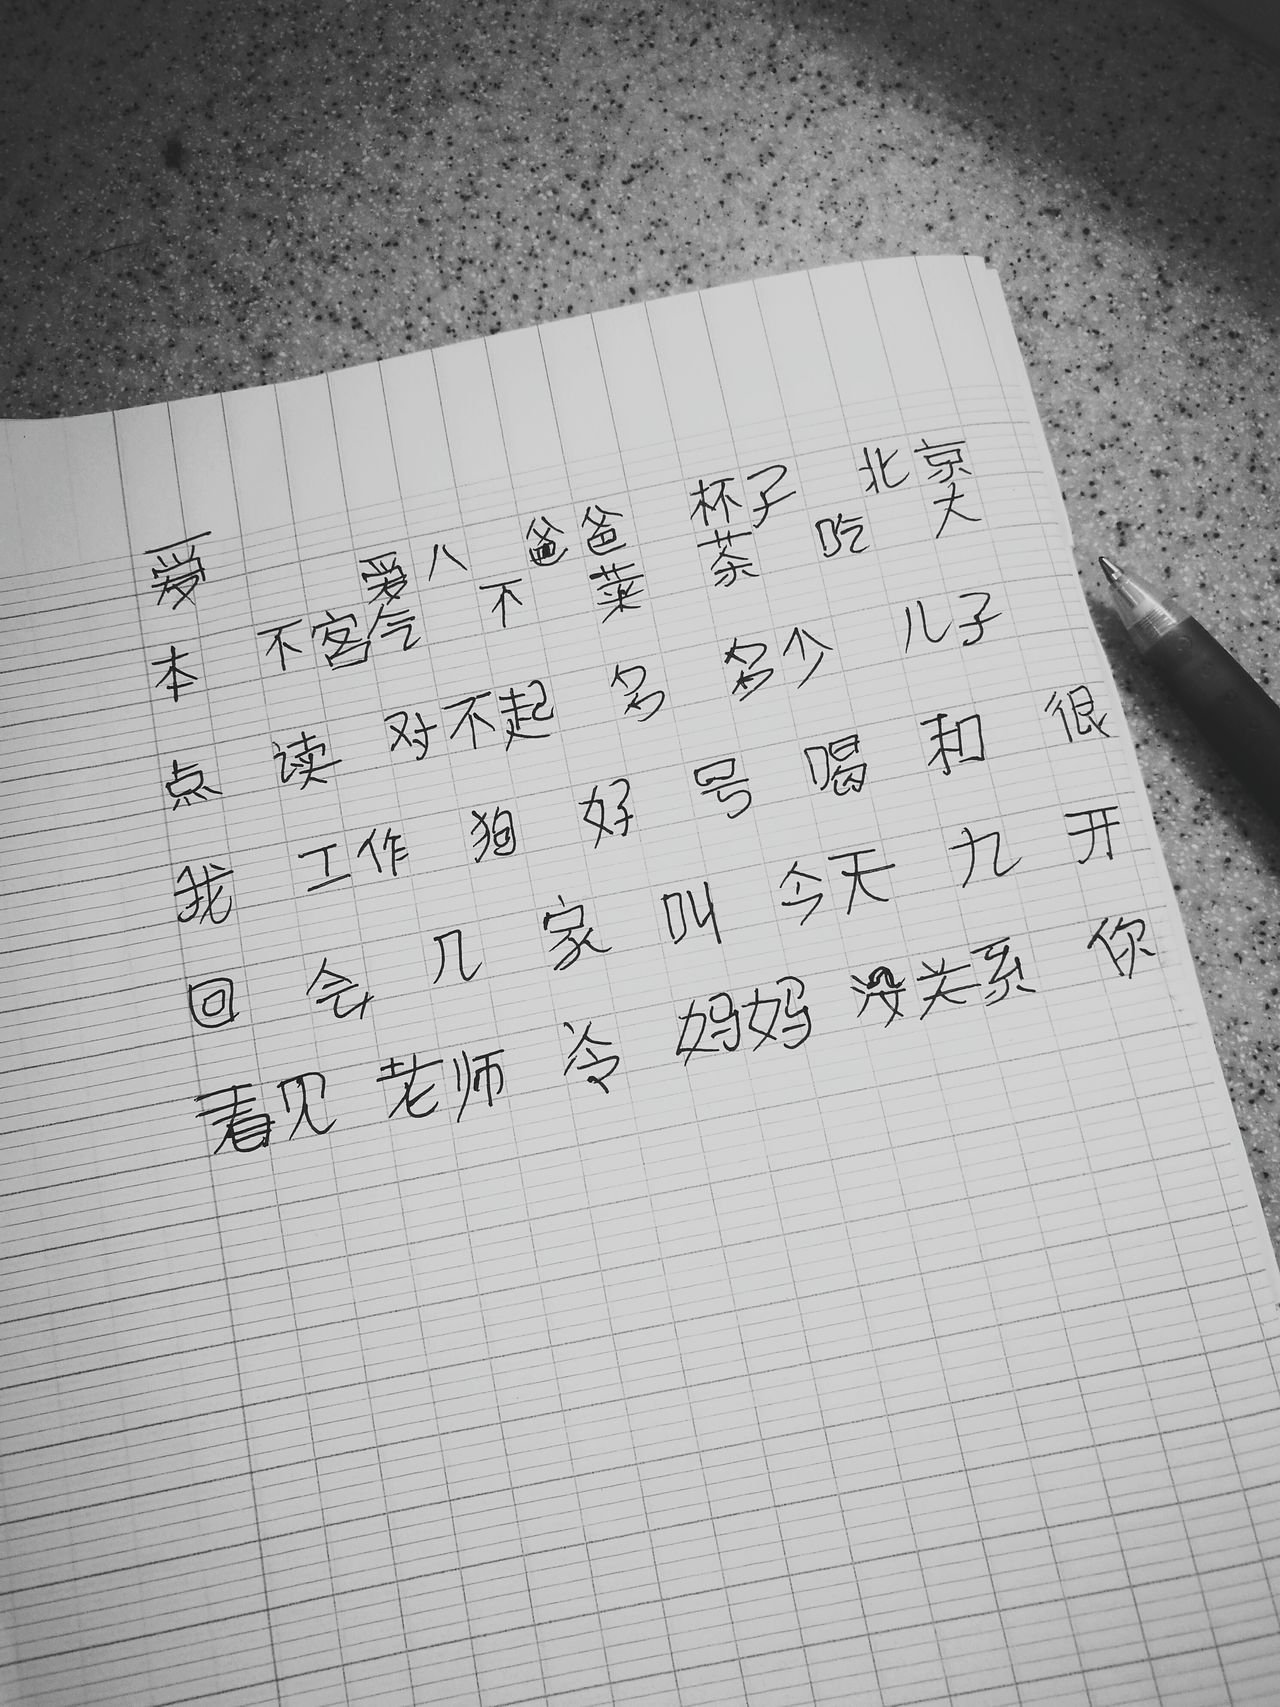 Slow day at work, so I'm practicing my Mandarin Chinese handwriting~ No People Text Paper Indoors  Handwriting  Brazzaville Congo Brazzaville Congo Mandarin Chinese LearningEveryday Learning Writing Languages Language Learning